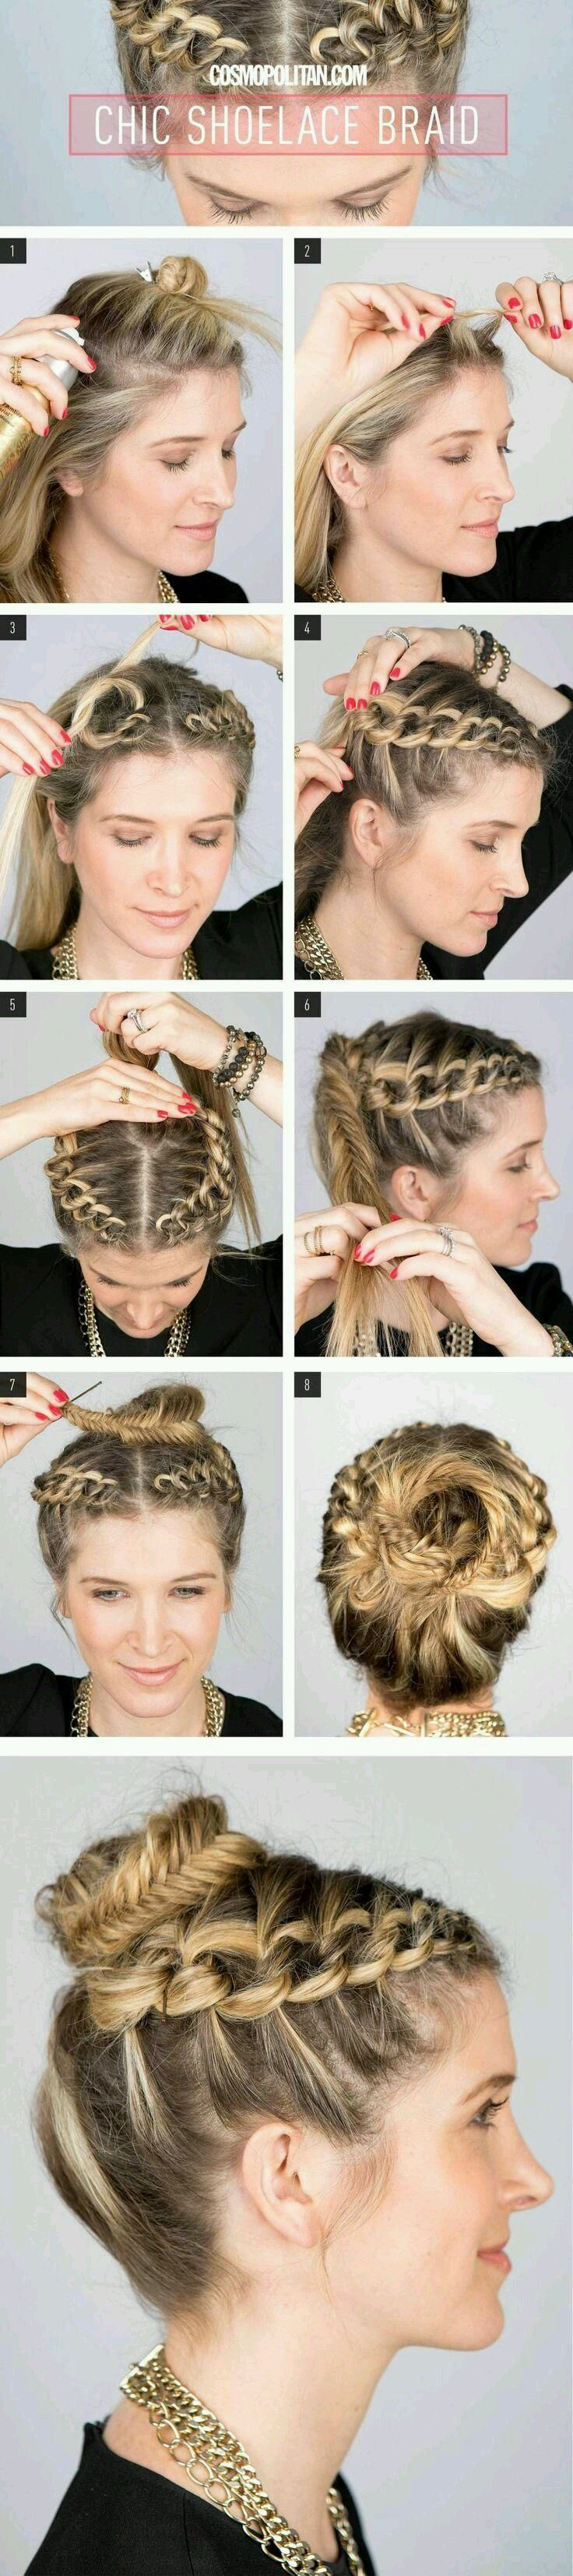 best a hair lair images on pinterest hair makeup hairstyle